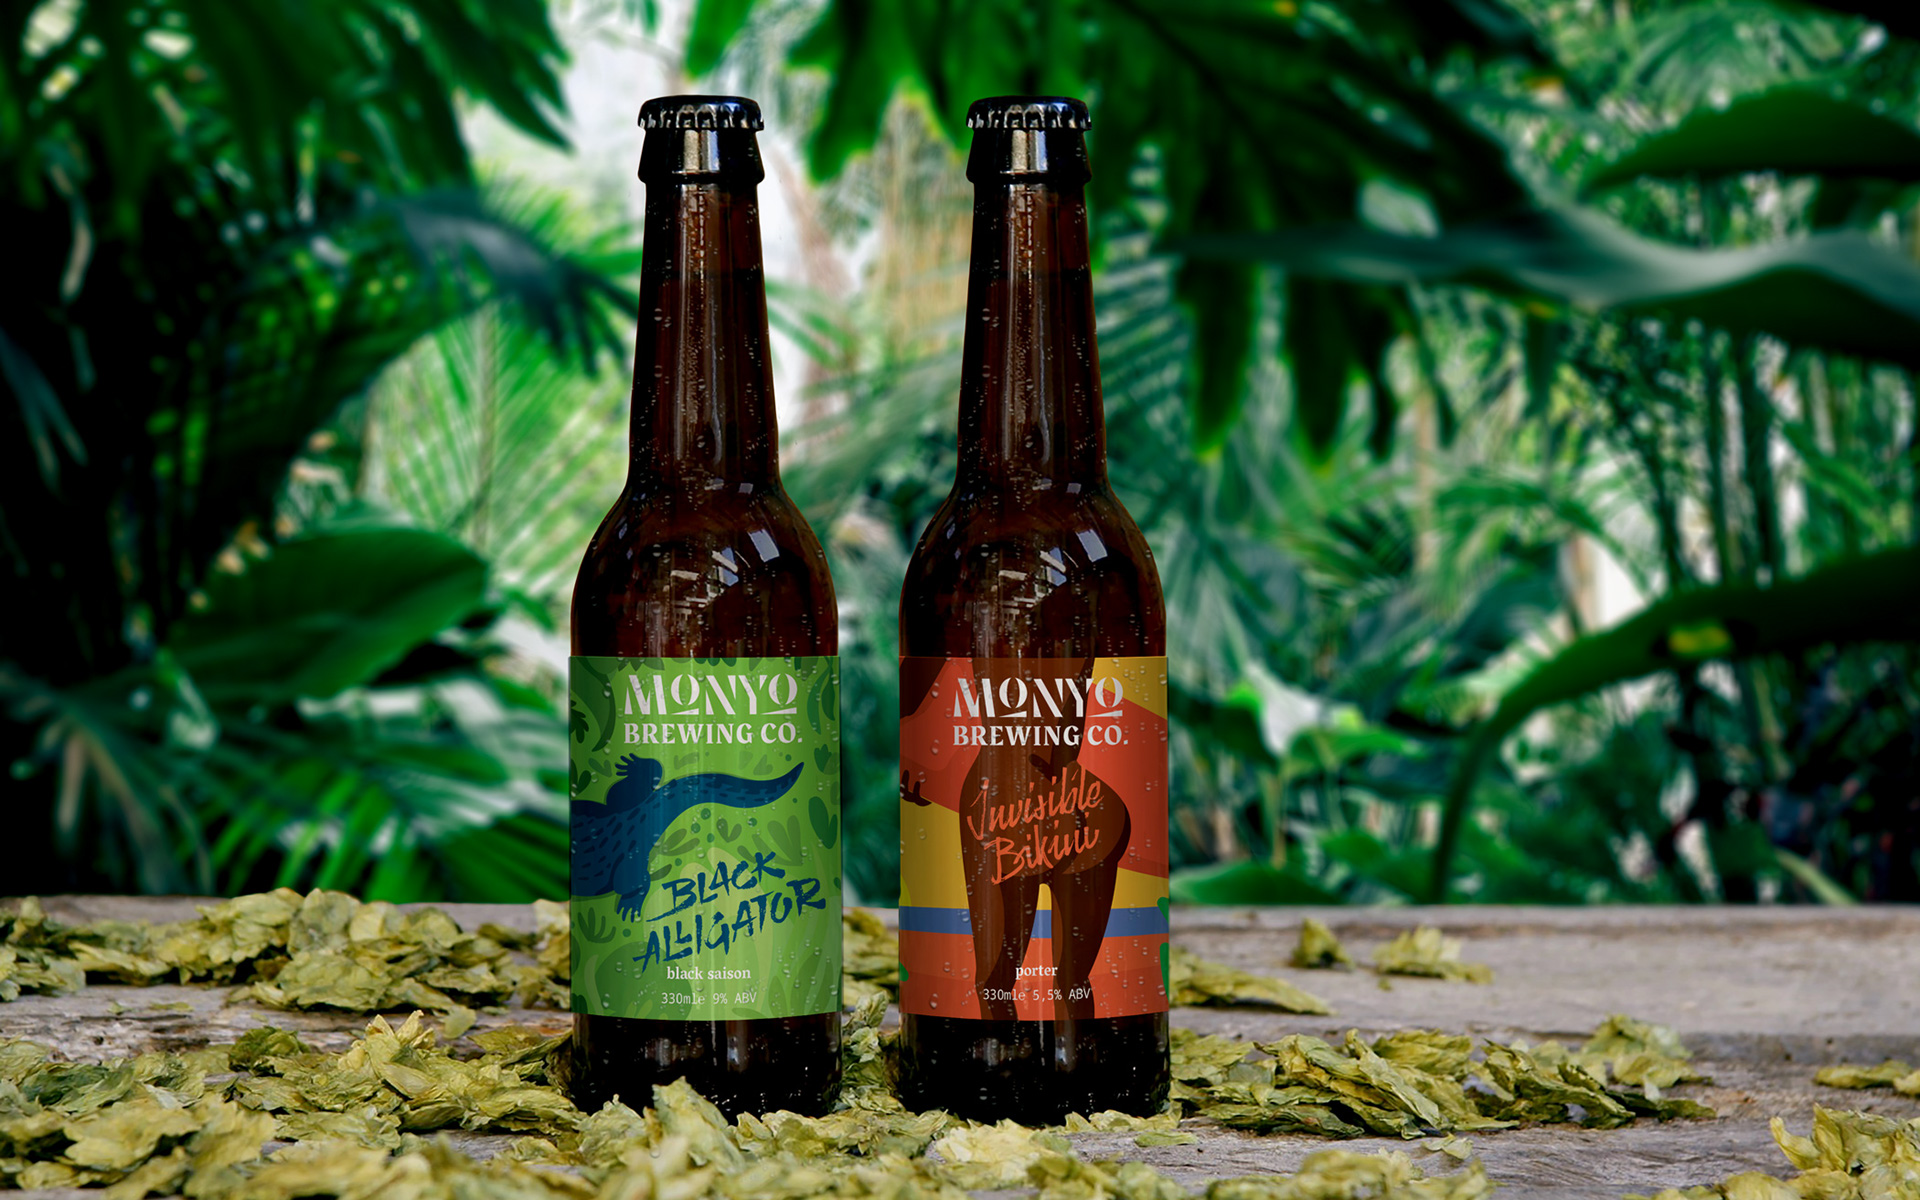 MONYO craft beer packaging \ Black Alligator and Invisible Bikini